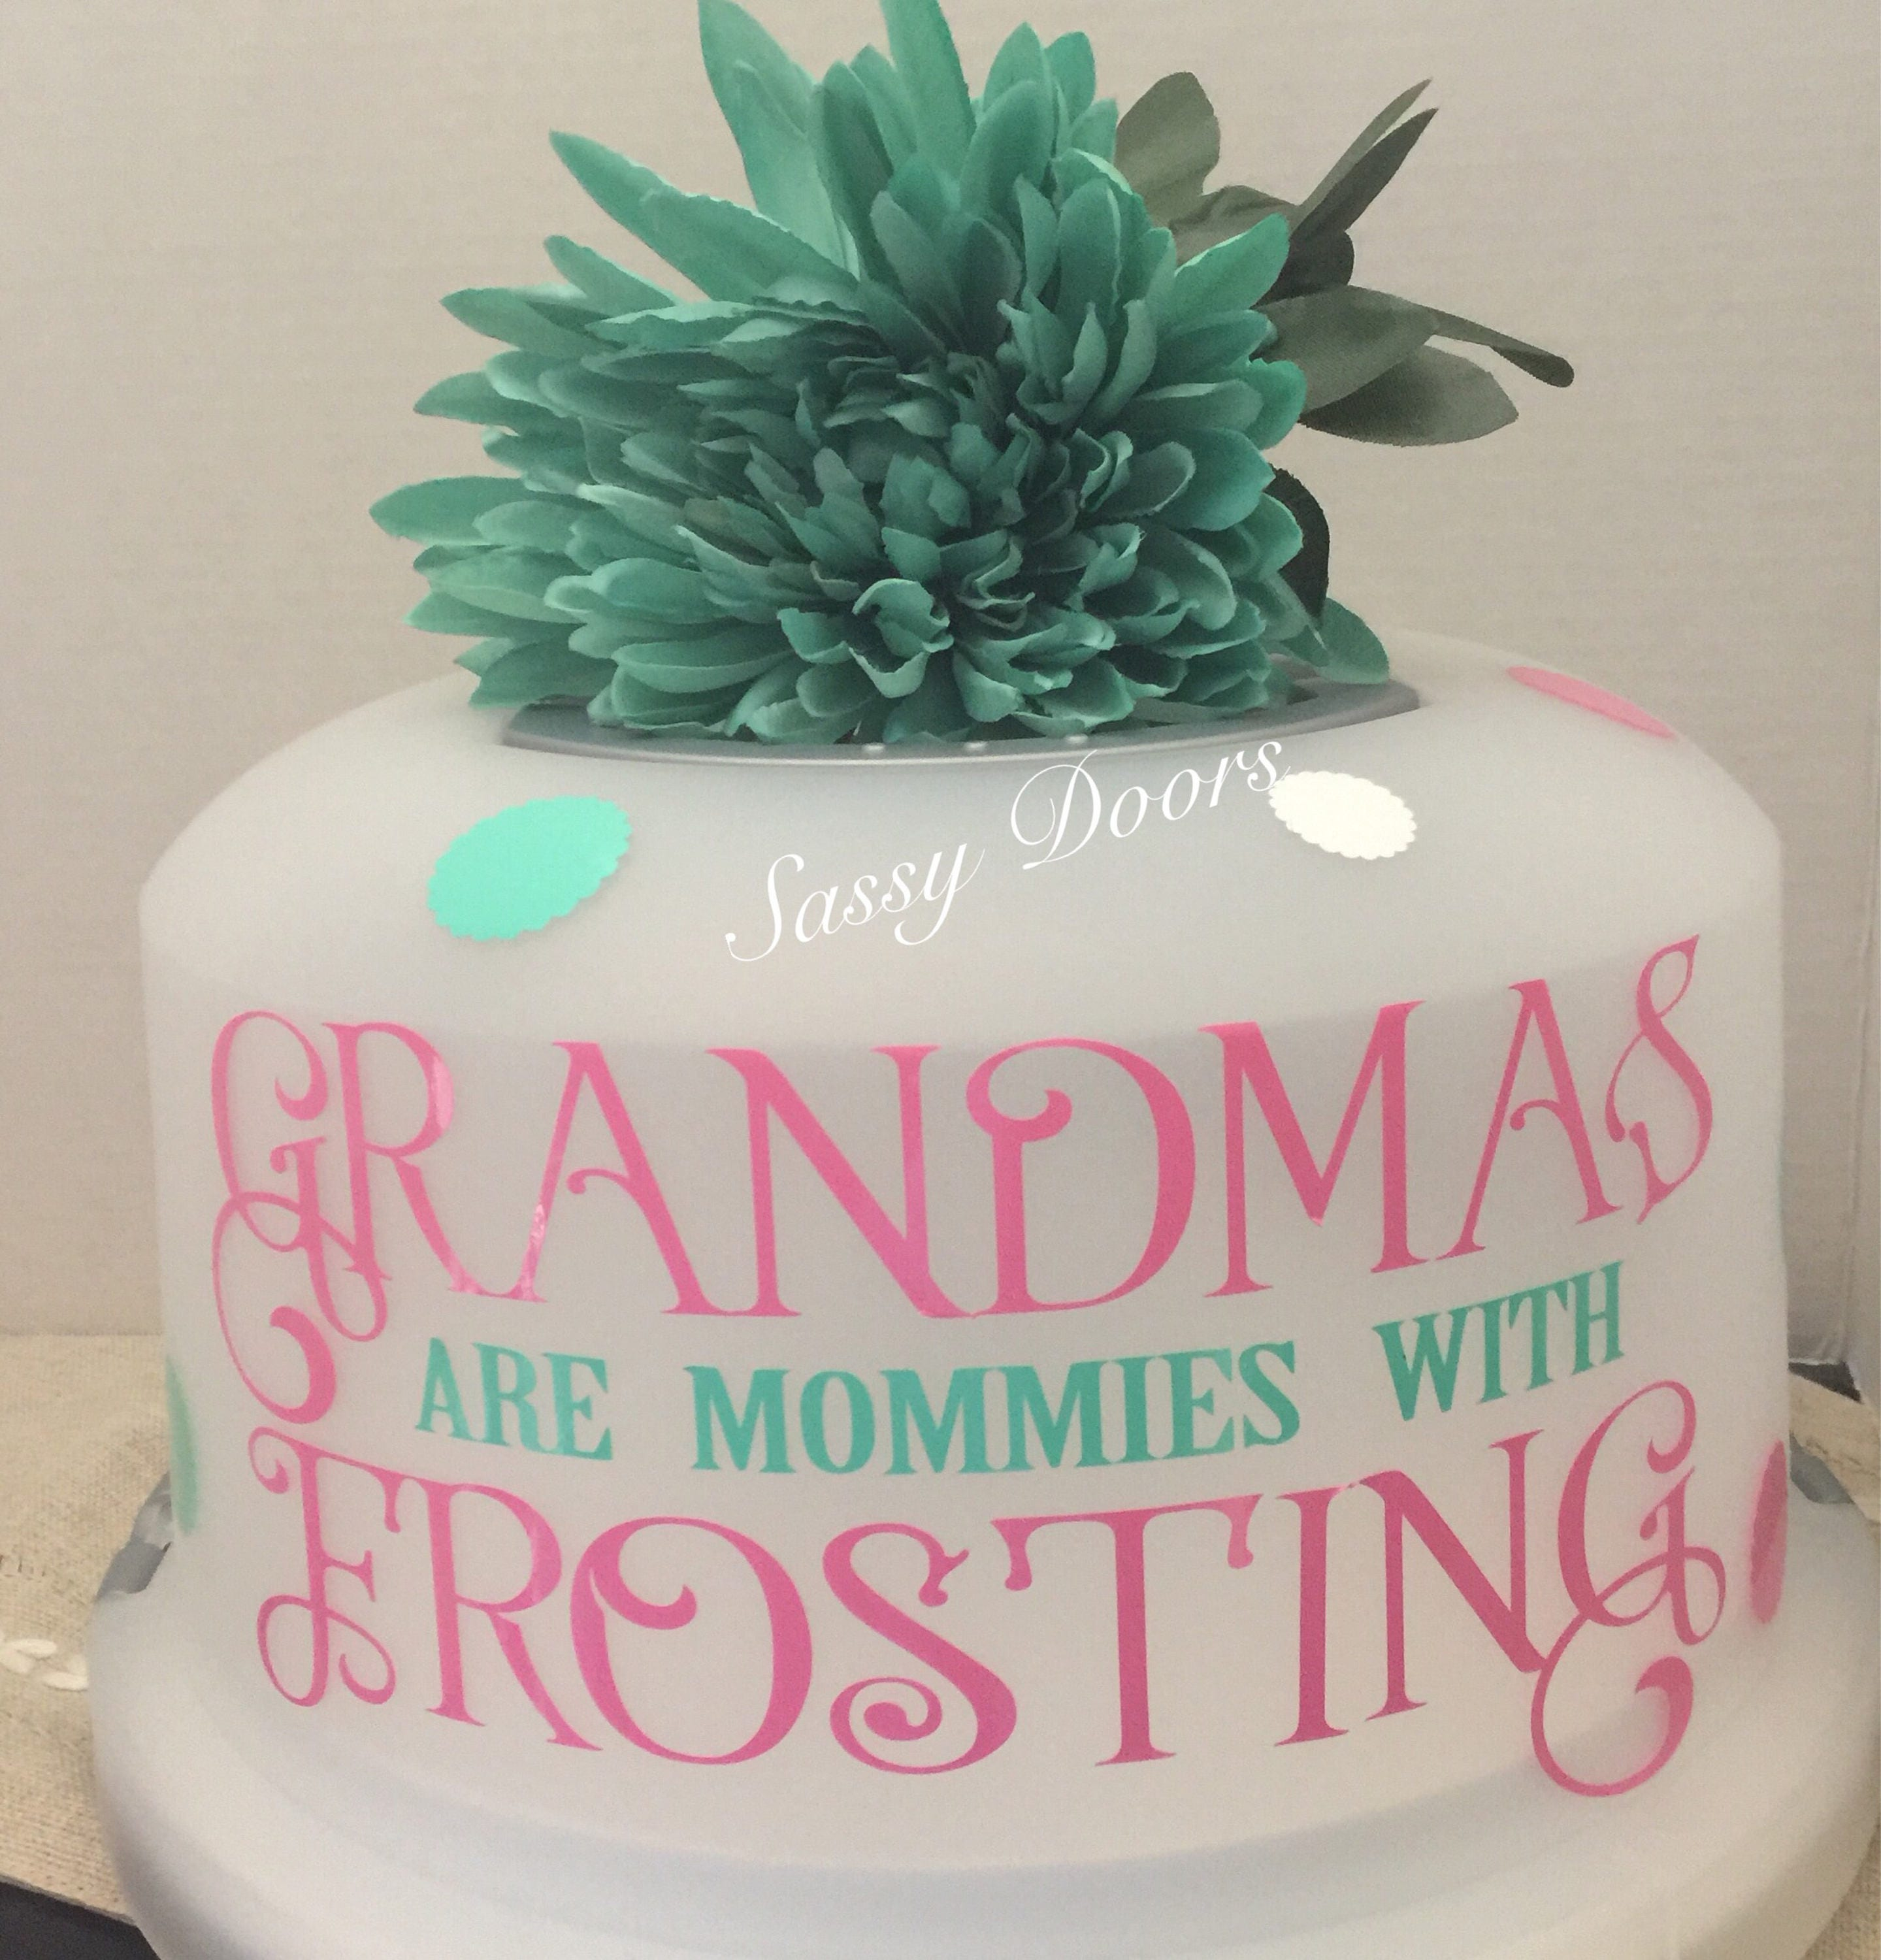 free shipping cake cover cake carrier grandparents gift gifts for mom gift for her bridal shower personalized gift